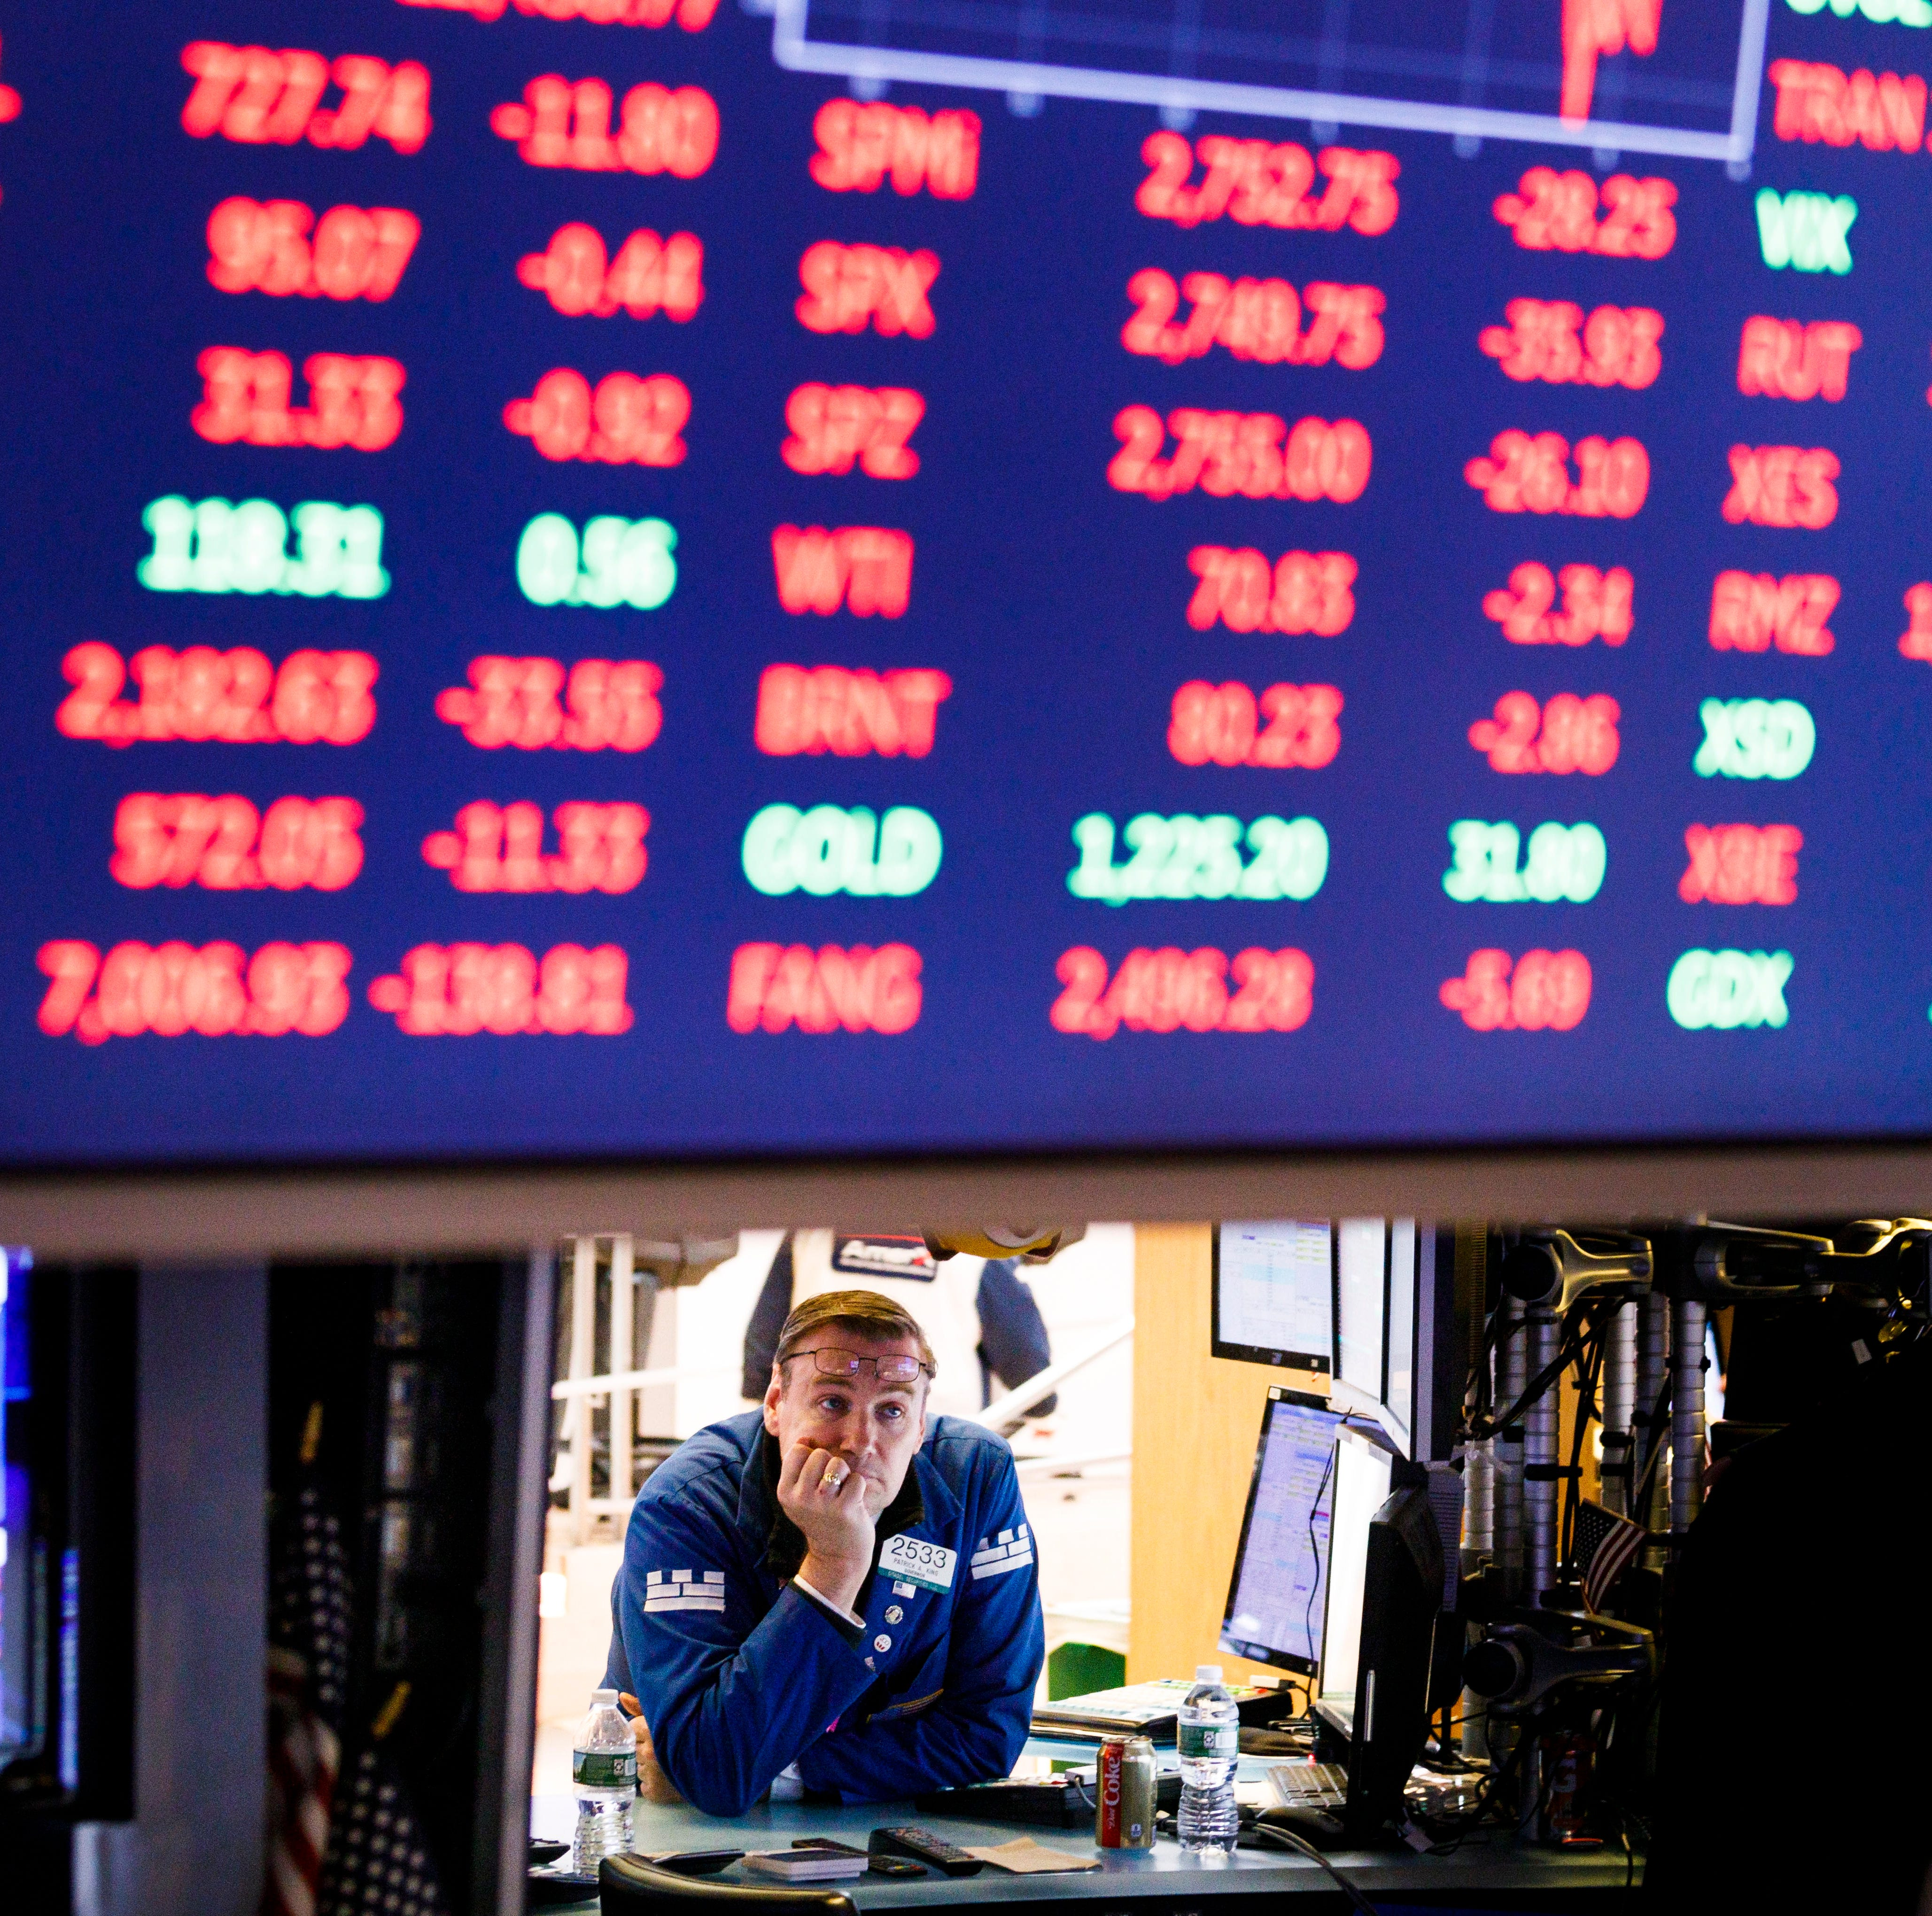 epa07086823 A trader works on the floor of the New York Stock Exchange in New York, New York, USA, on 11 October 2018. The Dow Jones industrial average lost nearly 550 points today.  EPA-EFE/JUSTIN LANE ORG XMIT: JLX21